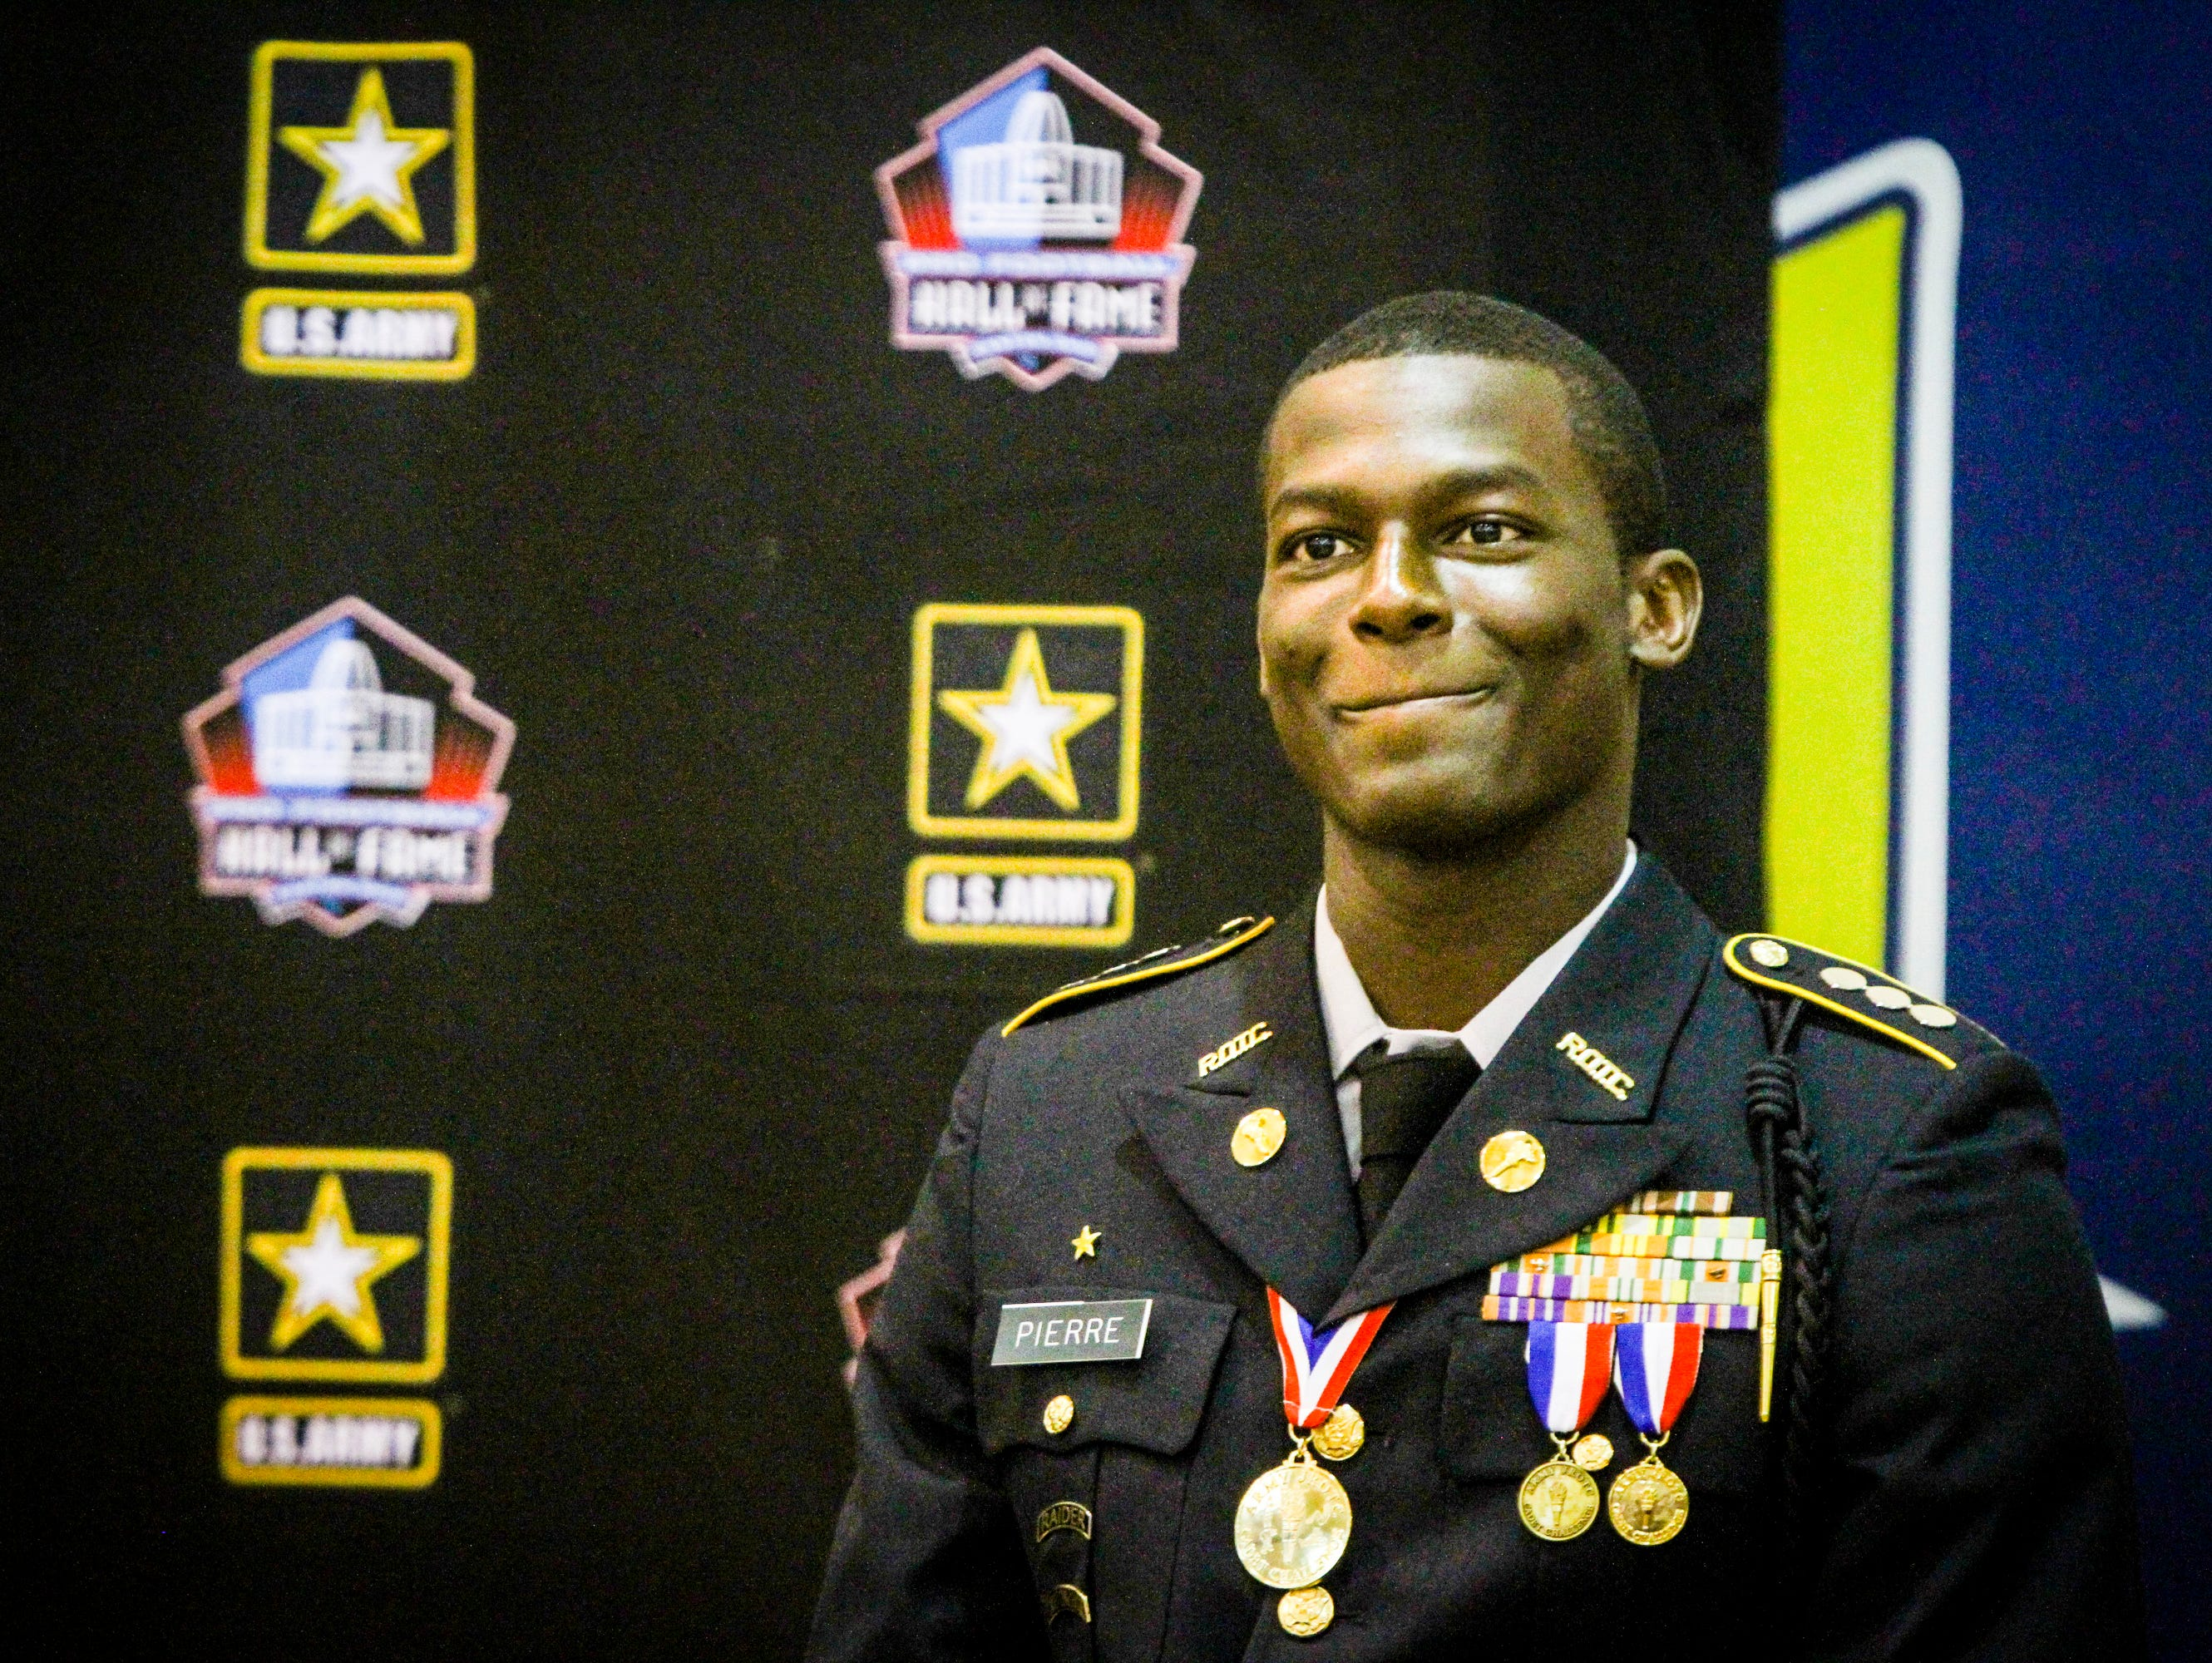 Lehigh Senior High senior Wadley Pierre was nominated as a finalist for the US Army and Pro Football Hall of Fame as a student-athlete finalist for an award of excellence. Hall of Fame NFL player Kevin Greene was there to present the recognition.